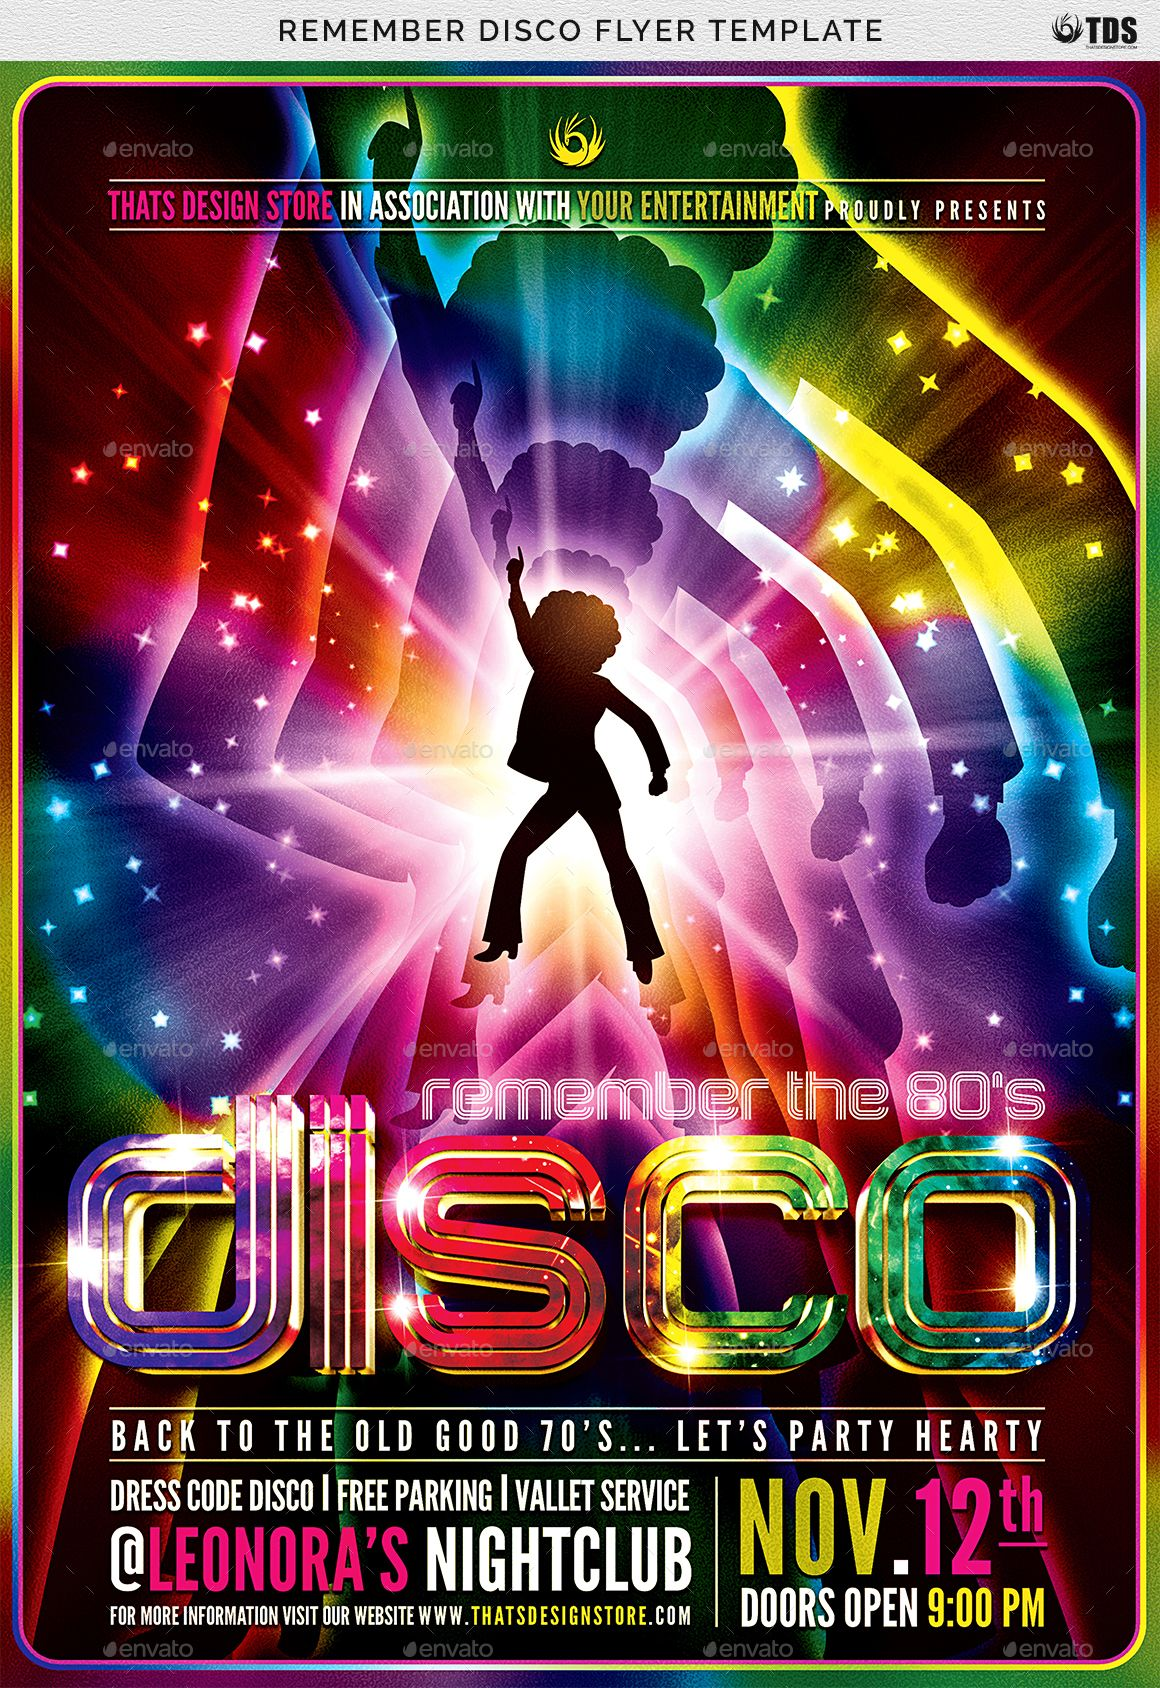 Remember Disco Flyer Template Ad Disco Ad Remember